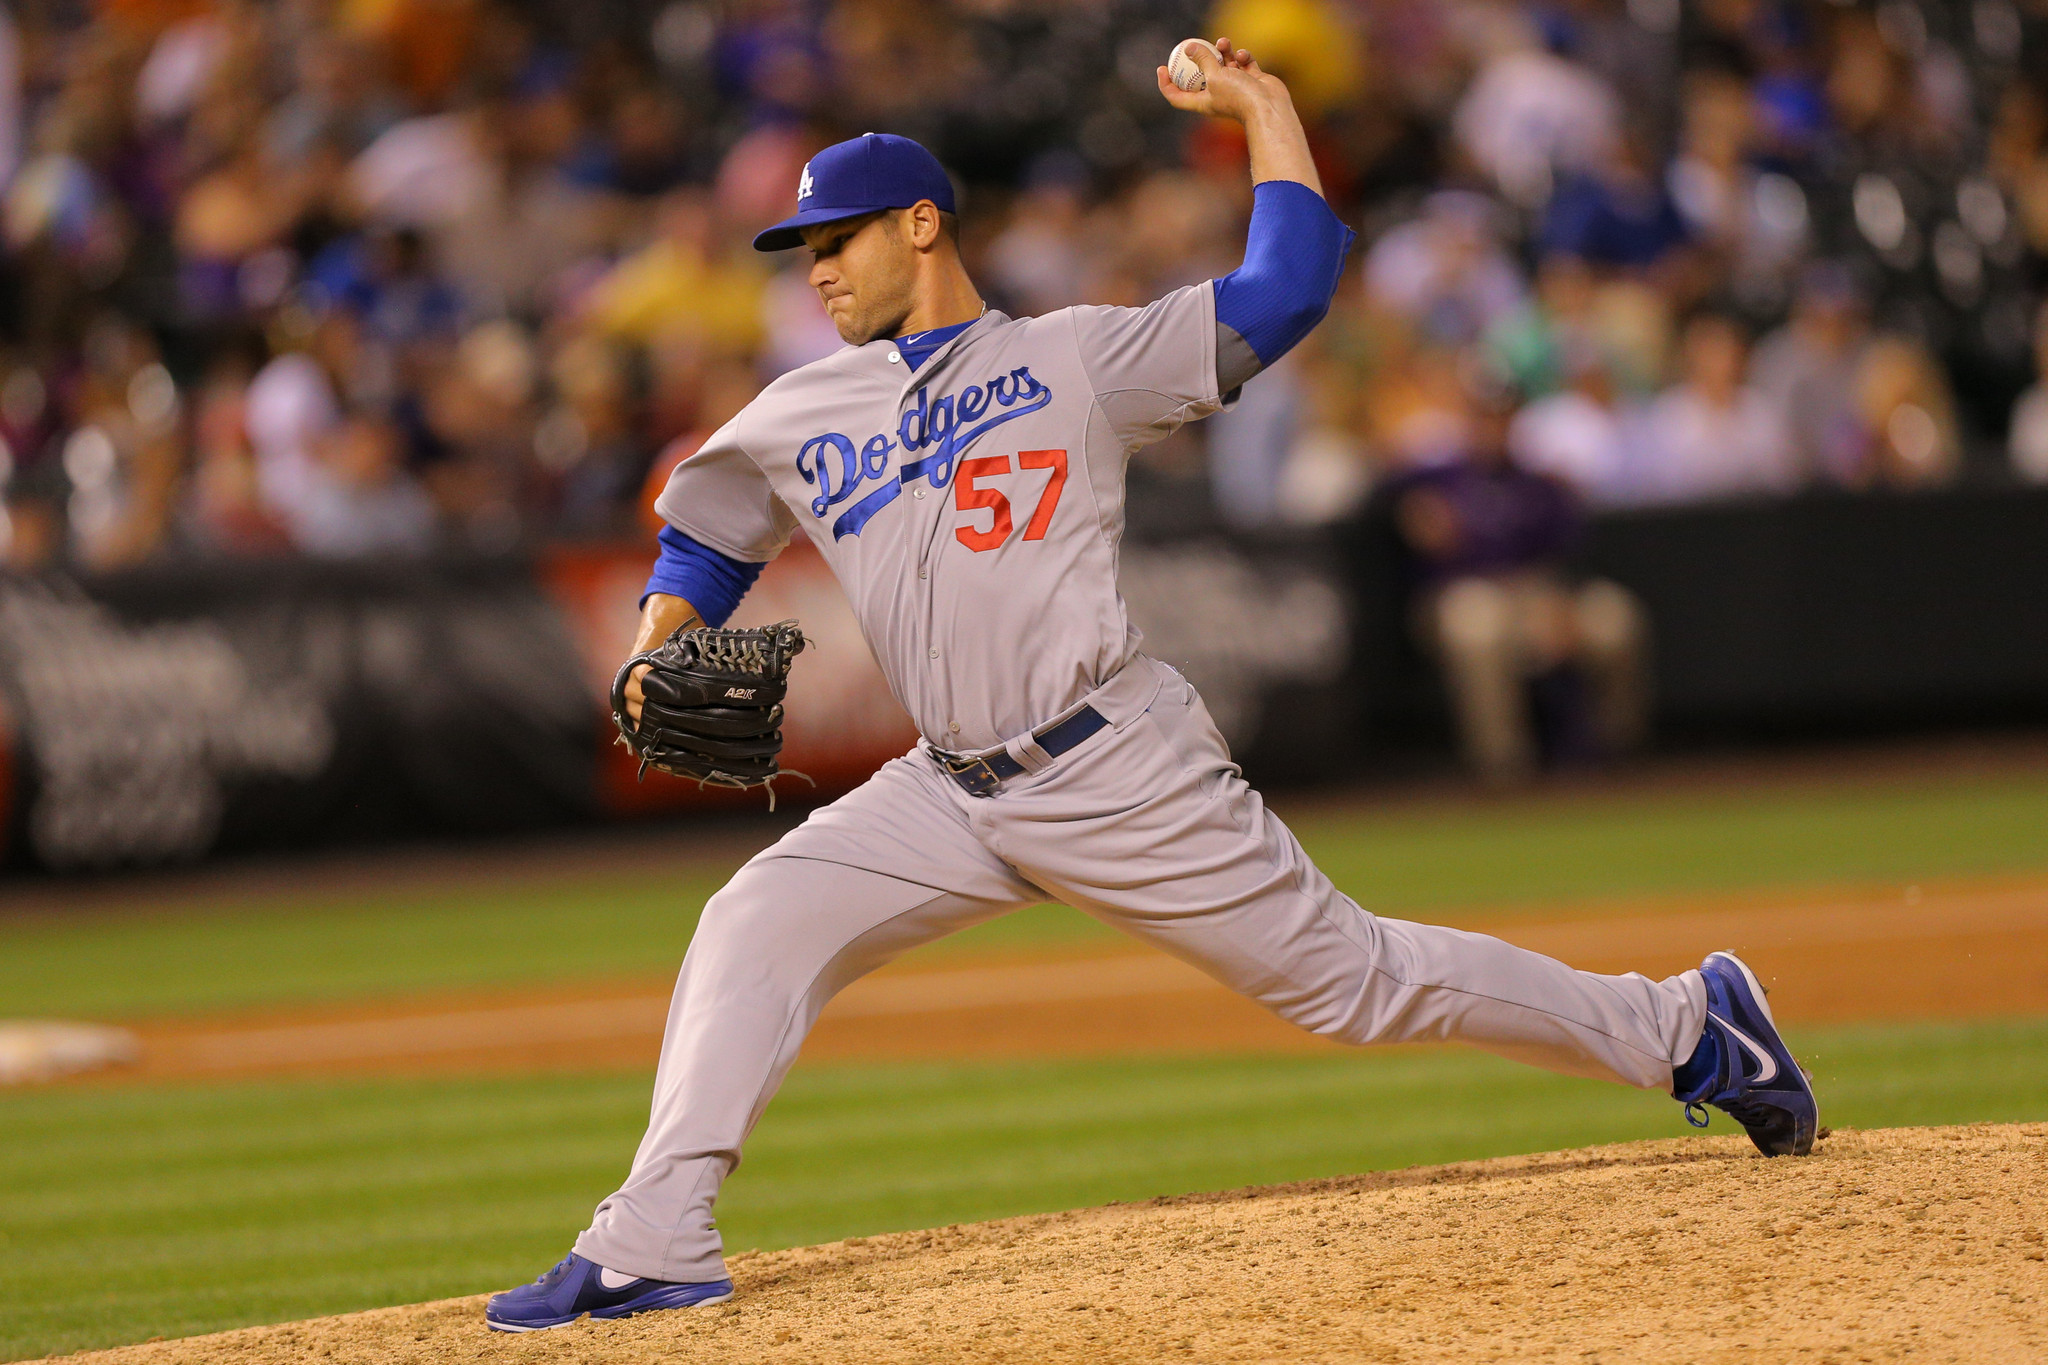 Dodgers release NL division series roster - LA Times